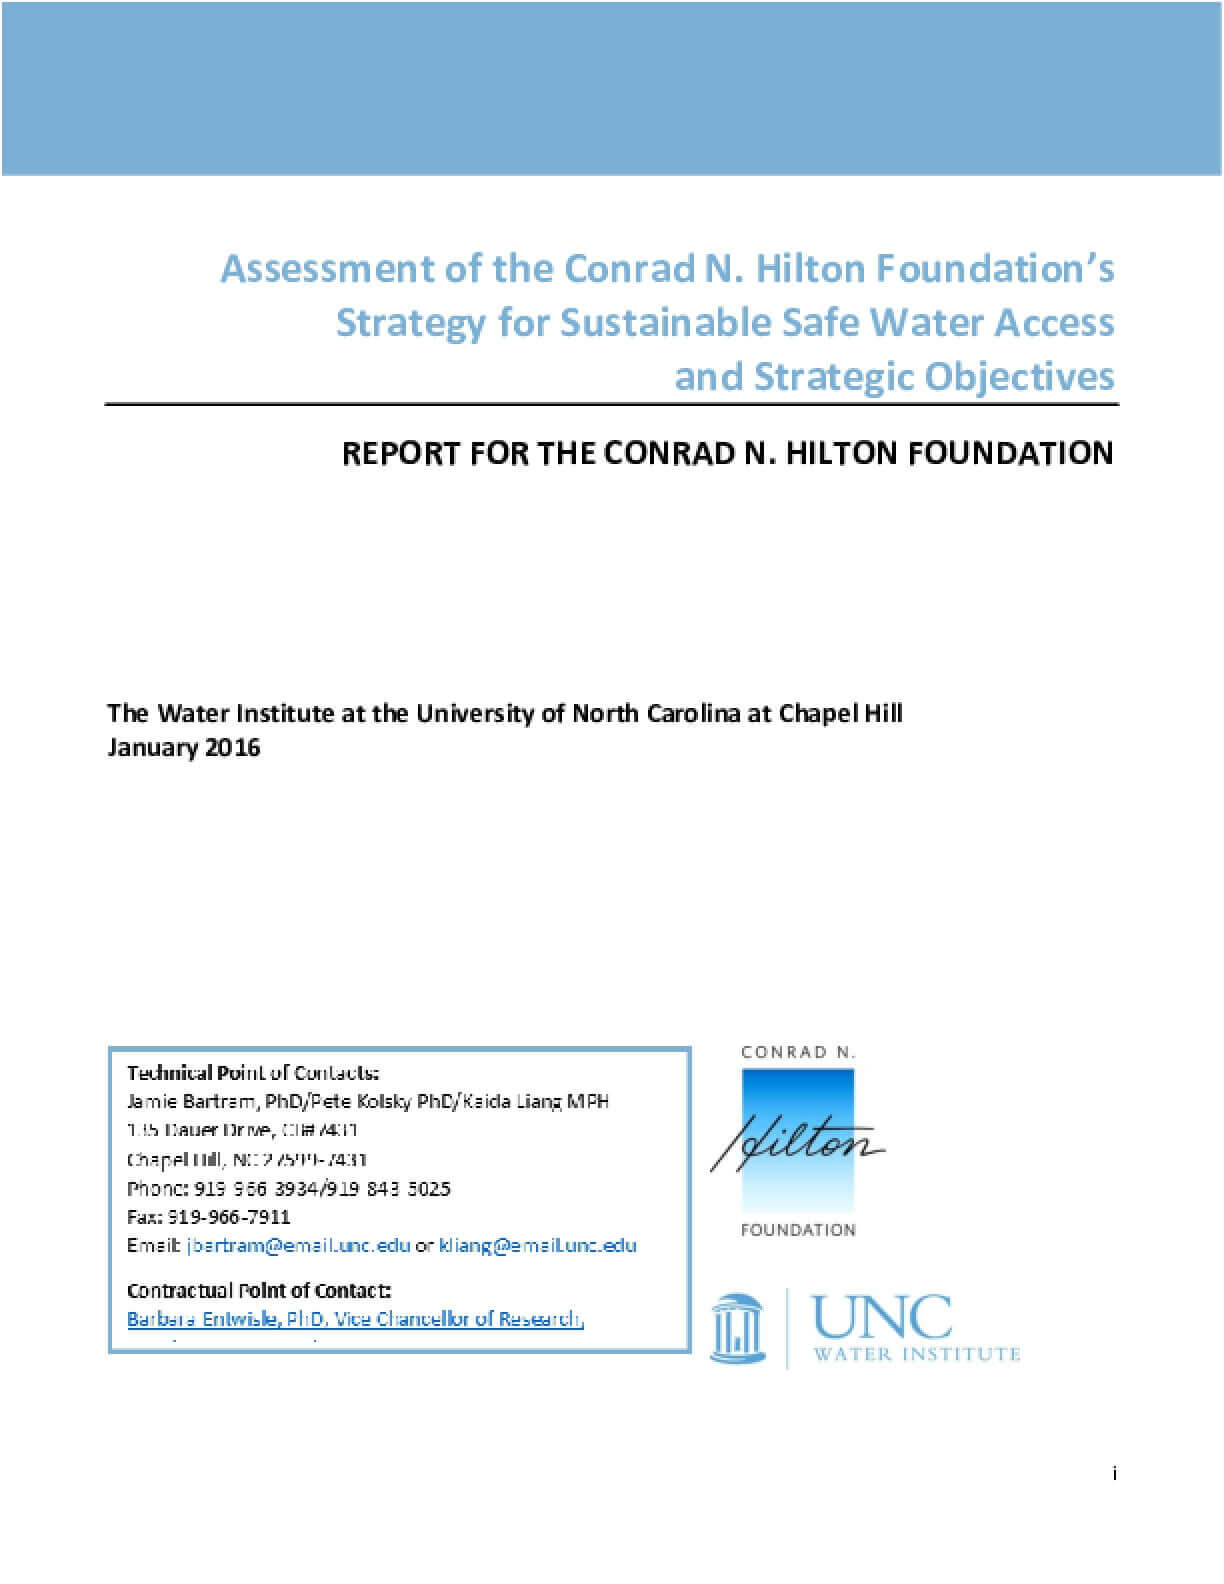 Assessment of the Conrad N. Hilton Foundation's Strategy for Sustainable Safe Water Access and Strategic Objectives